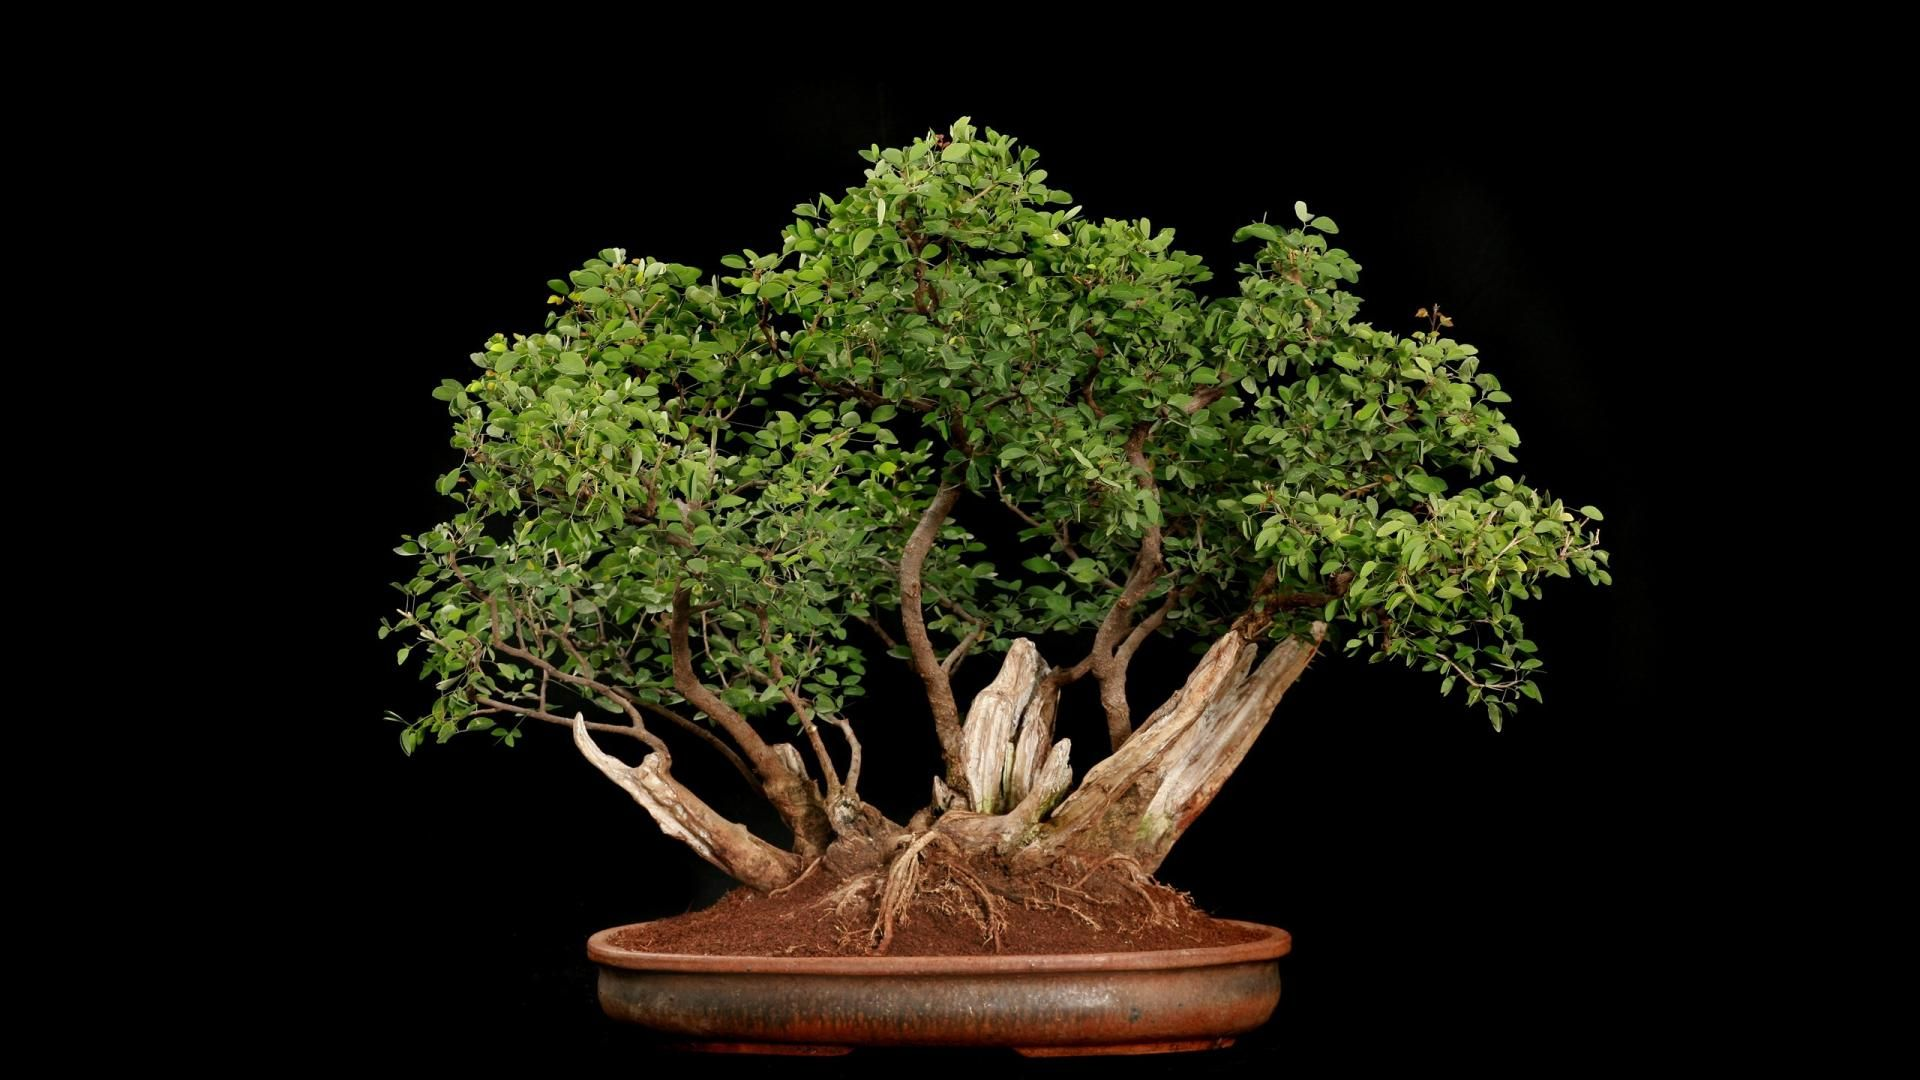 Freebonsai Wallpaper For Android For Desktop